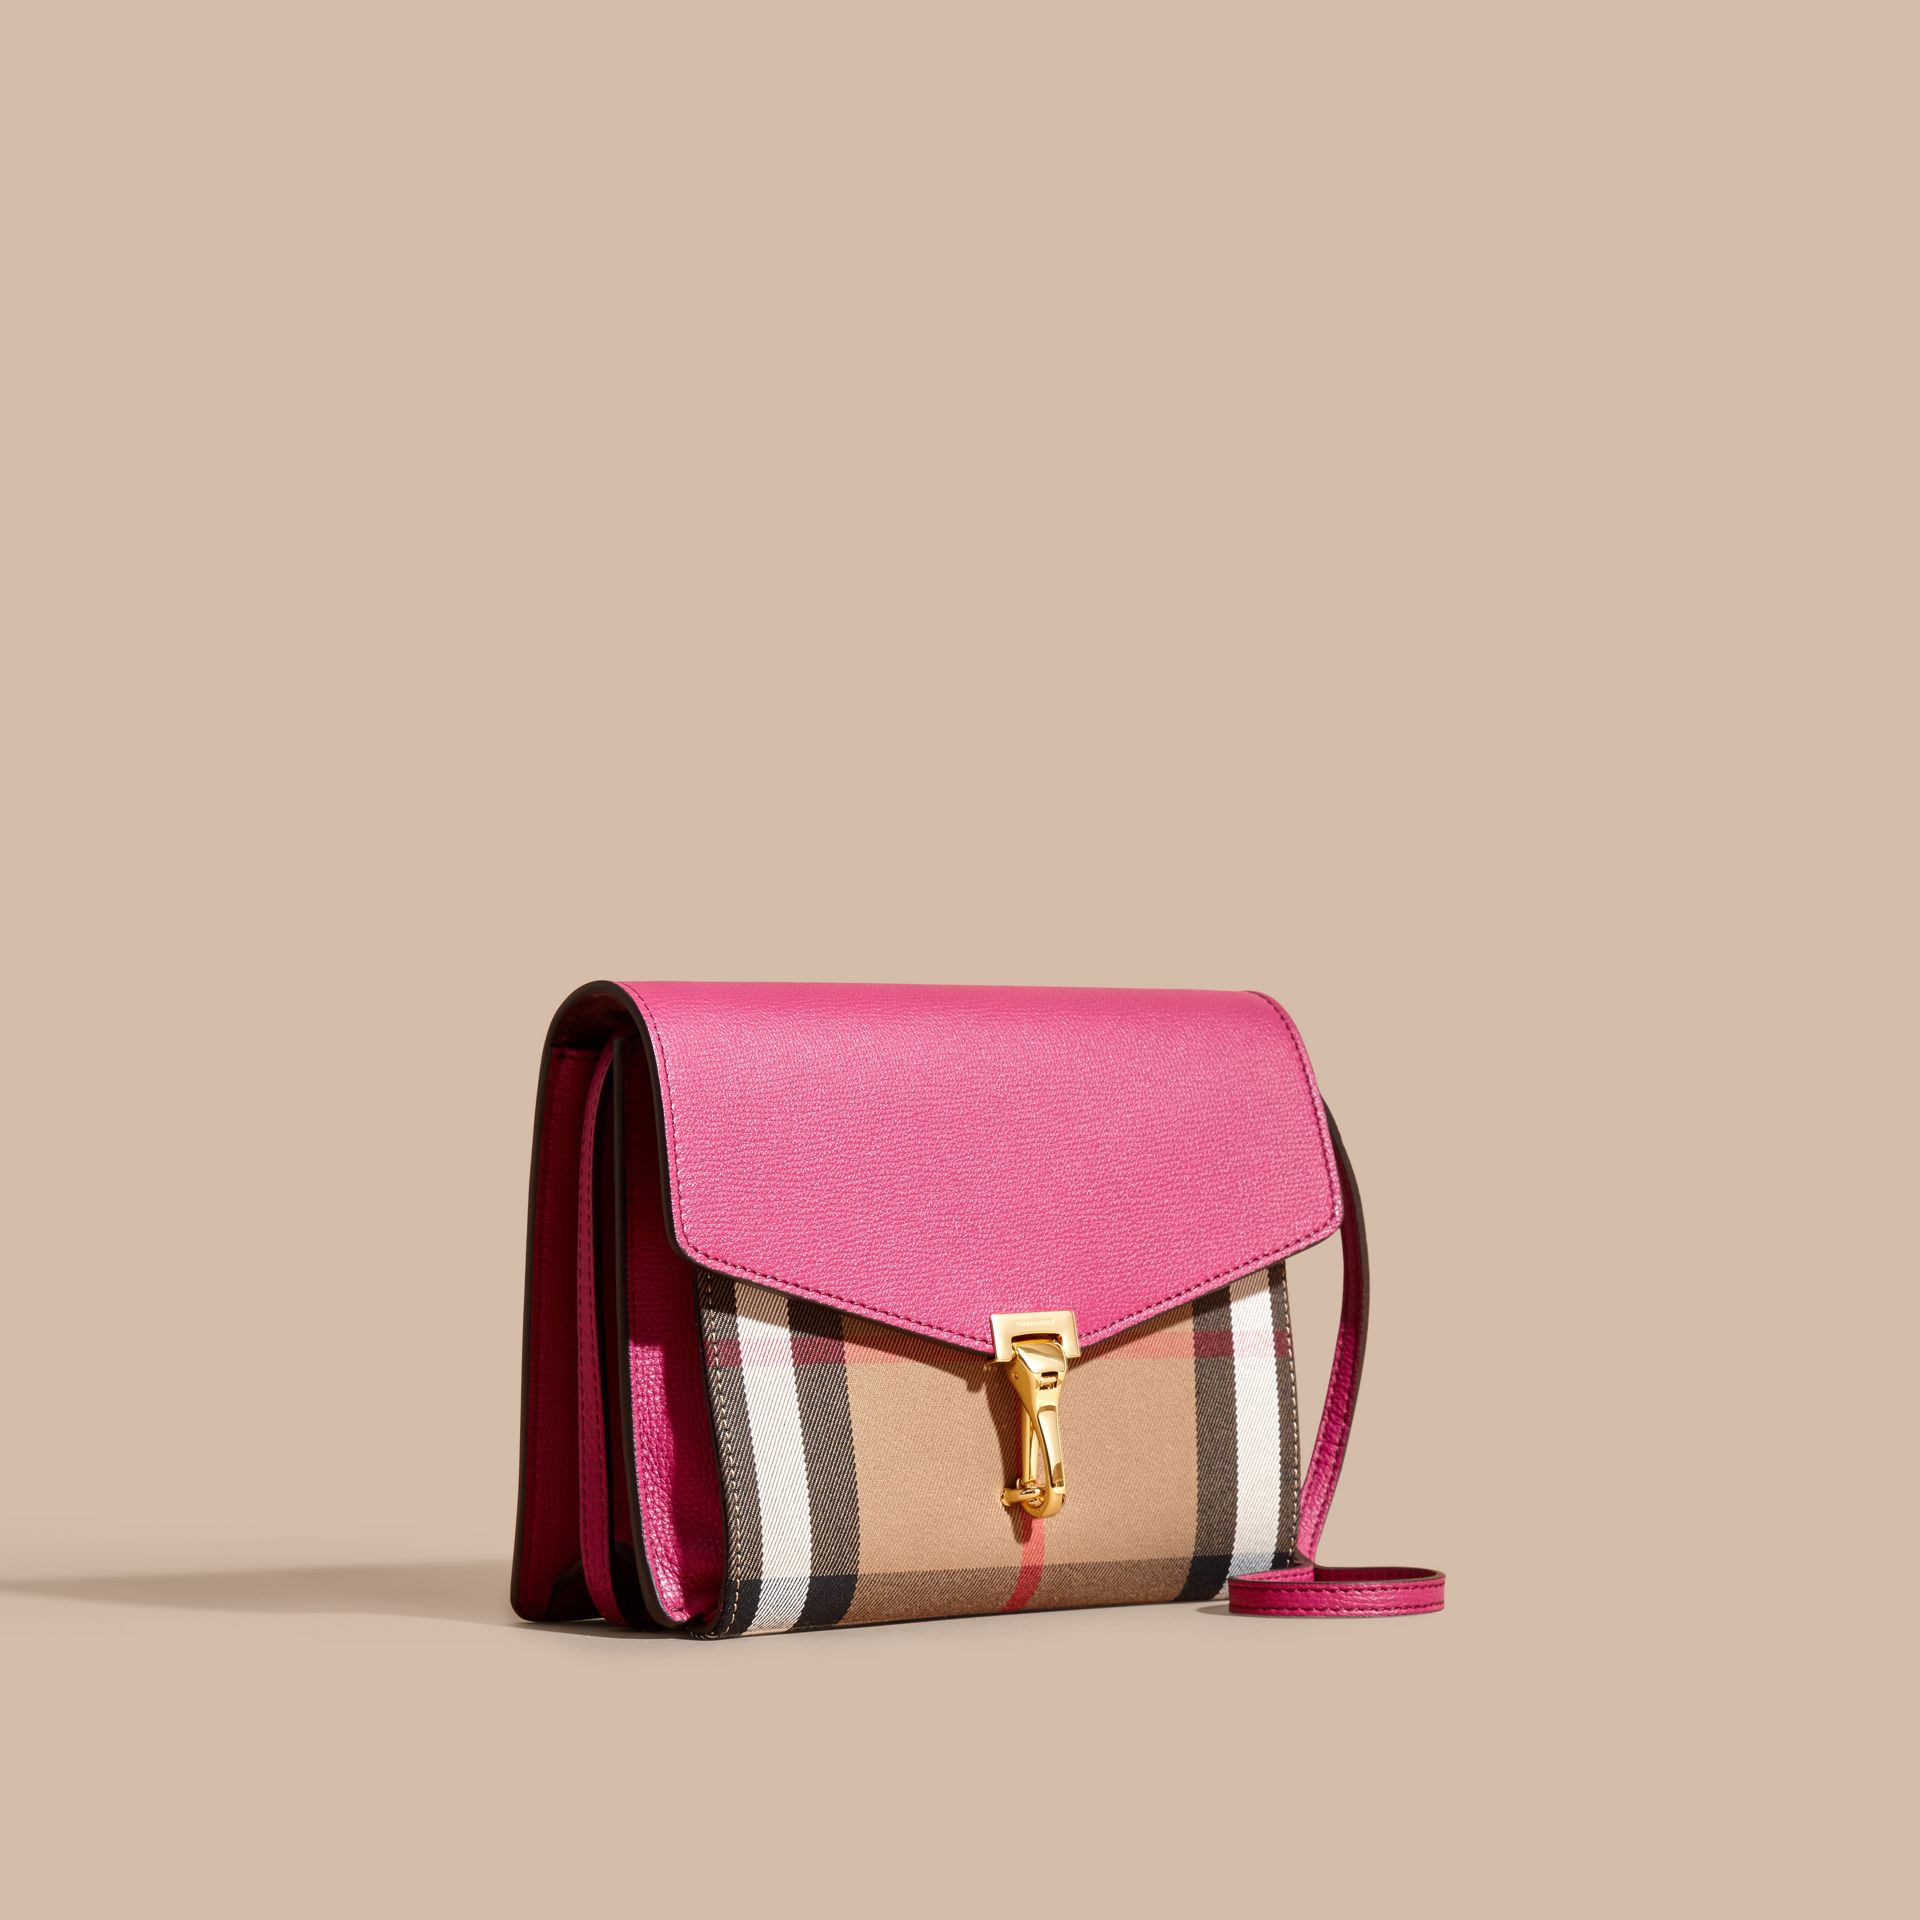 Brilliant fuchsia Small Leather and House Check Crossbody Bag Brilliant Fuchsia - gallery image 1